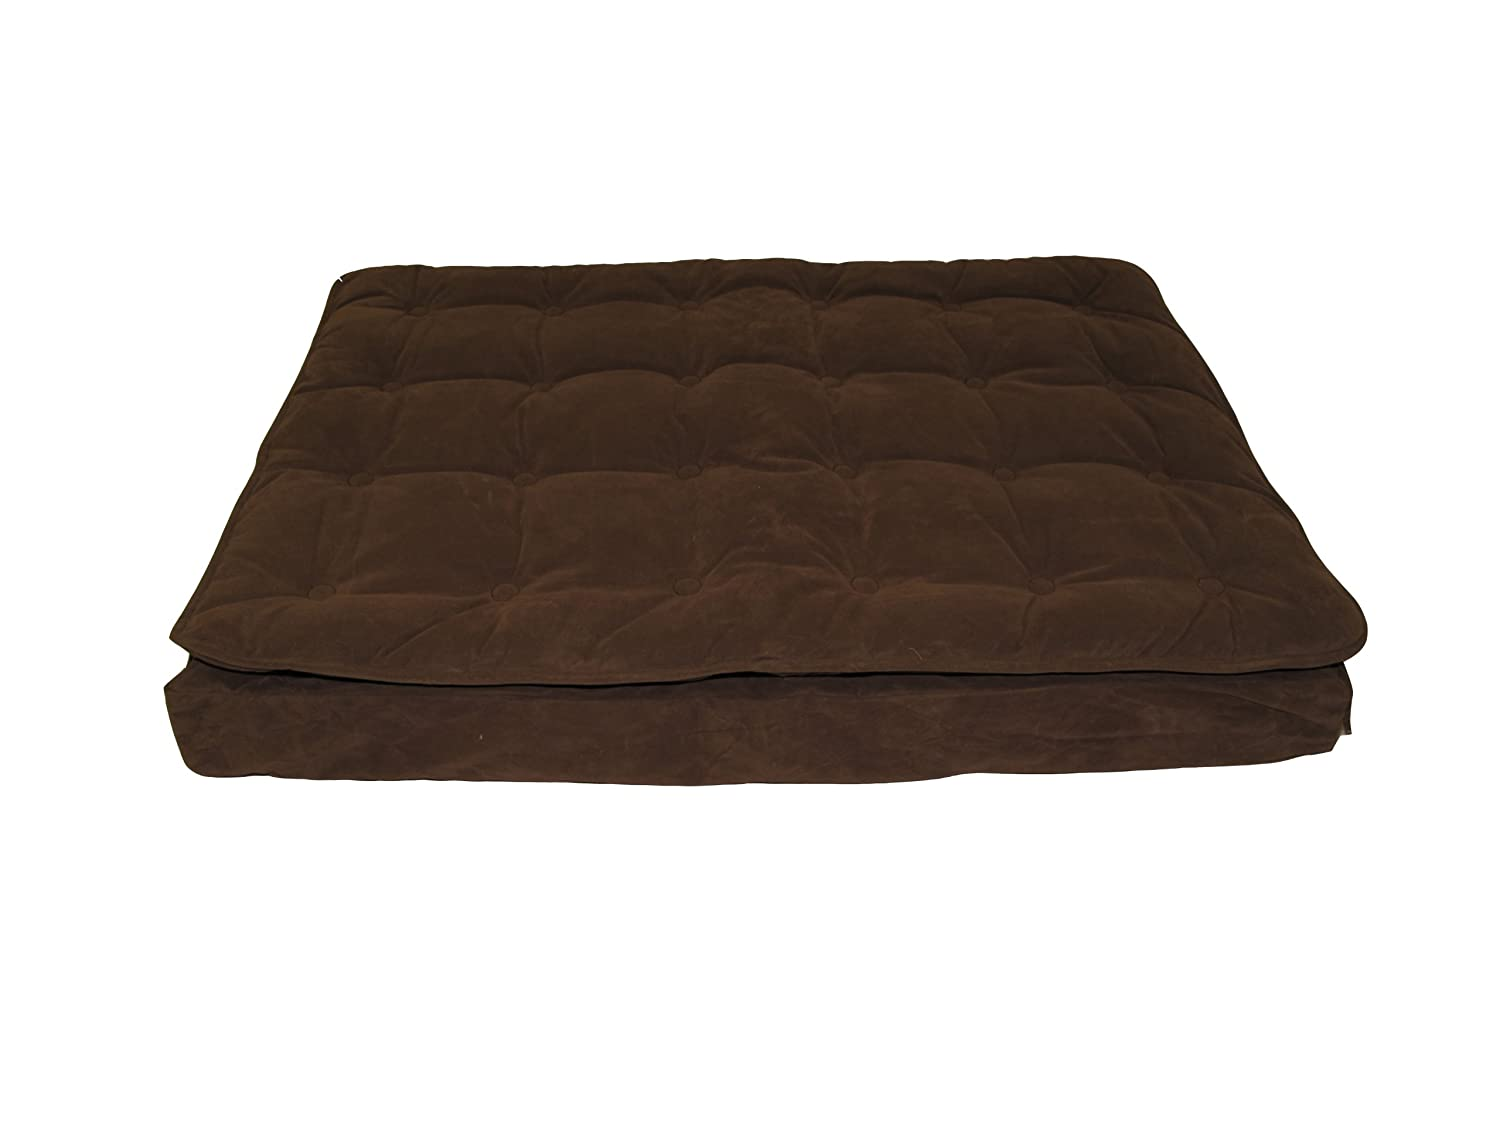 Carolina Pet 01783 CPC Luxury Pillow Ex Large Top Mattress Pet Bed, Chocolate, 36 by 48 by 4